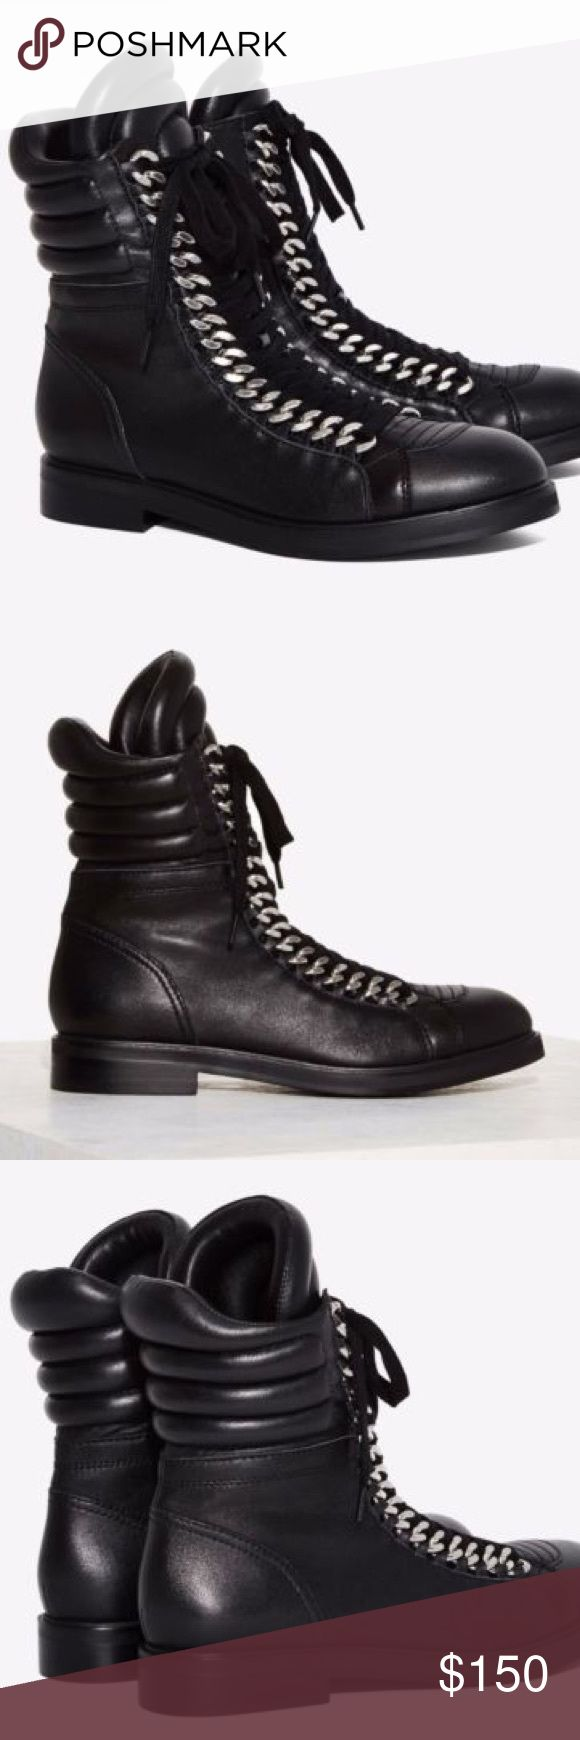 Lust for Life Oasis Black Leather Combat Boots UNWORN, smooth genuine leather high top combat boot featuring a low heel and rounded toe with padded moto style details at opening, silver metal chain accent down the front, lace-up closure, and inner side zip closure. Lust for Life Shoes Combat & Moto Boots